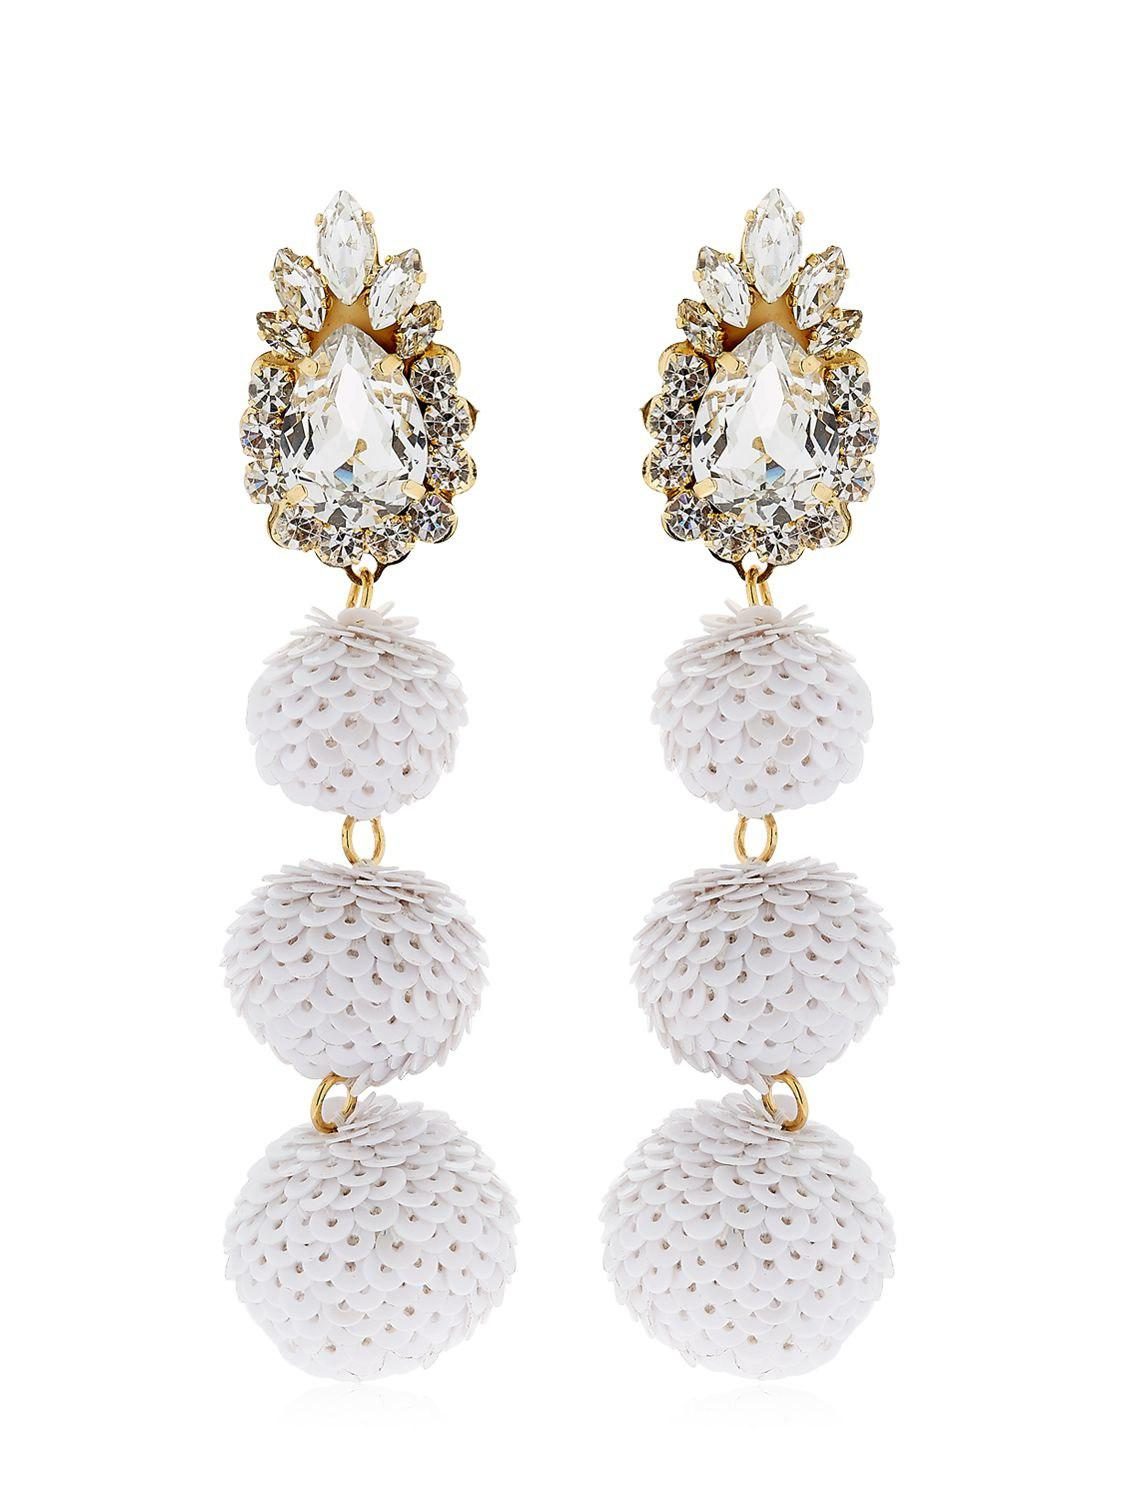 Shourouk Palermo Crystal Earrings in White Brass, Swarovski Crystals and Pearls